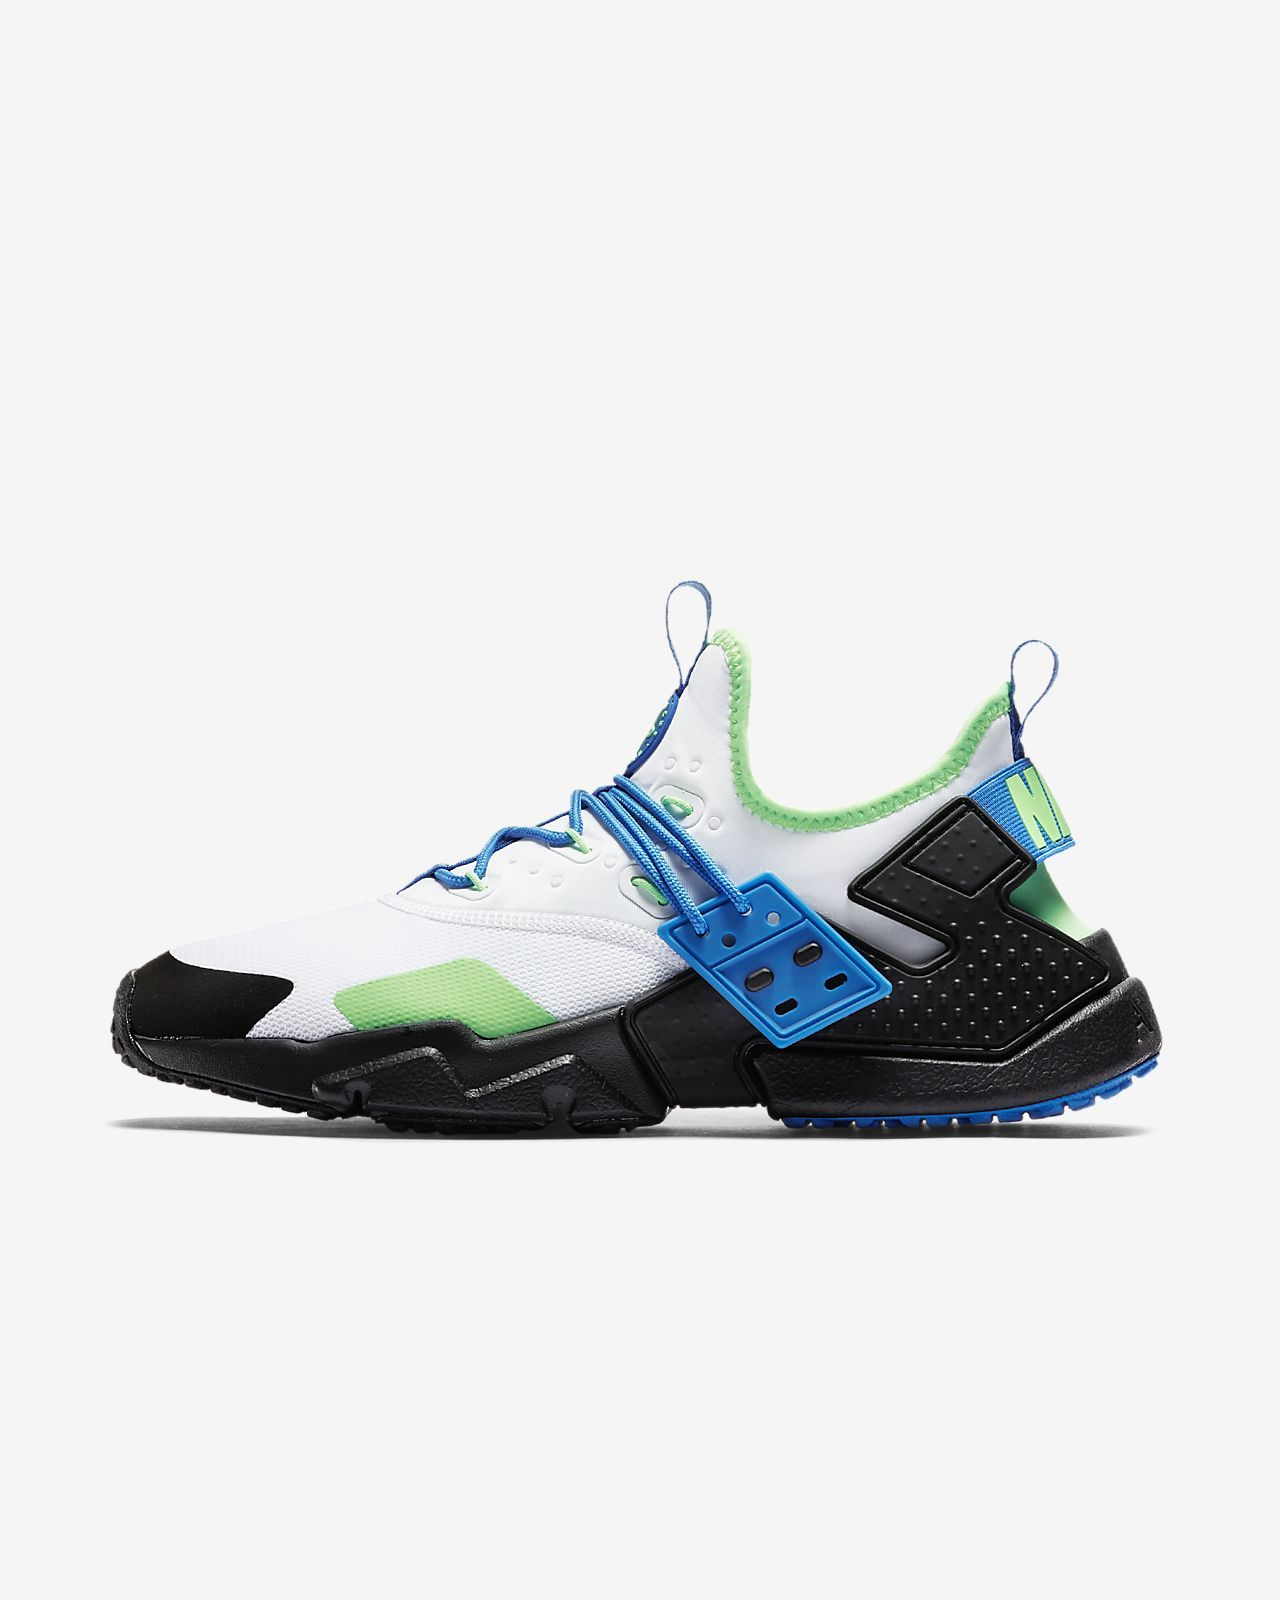 7bc9f2061d1e6 Nike Air Huarache Drift Men s Shoe unites the best design elements of the  era with a customizable lacing system that lets you wear it in different  way ...